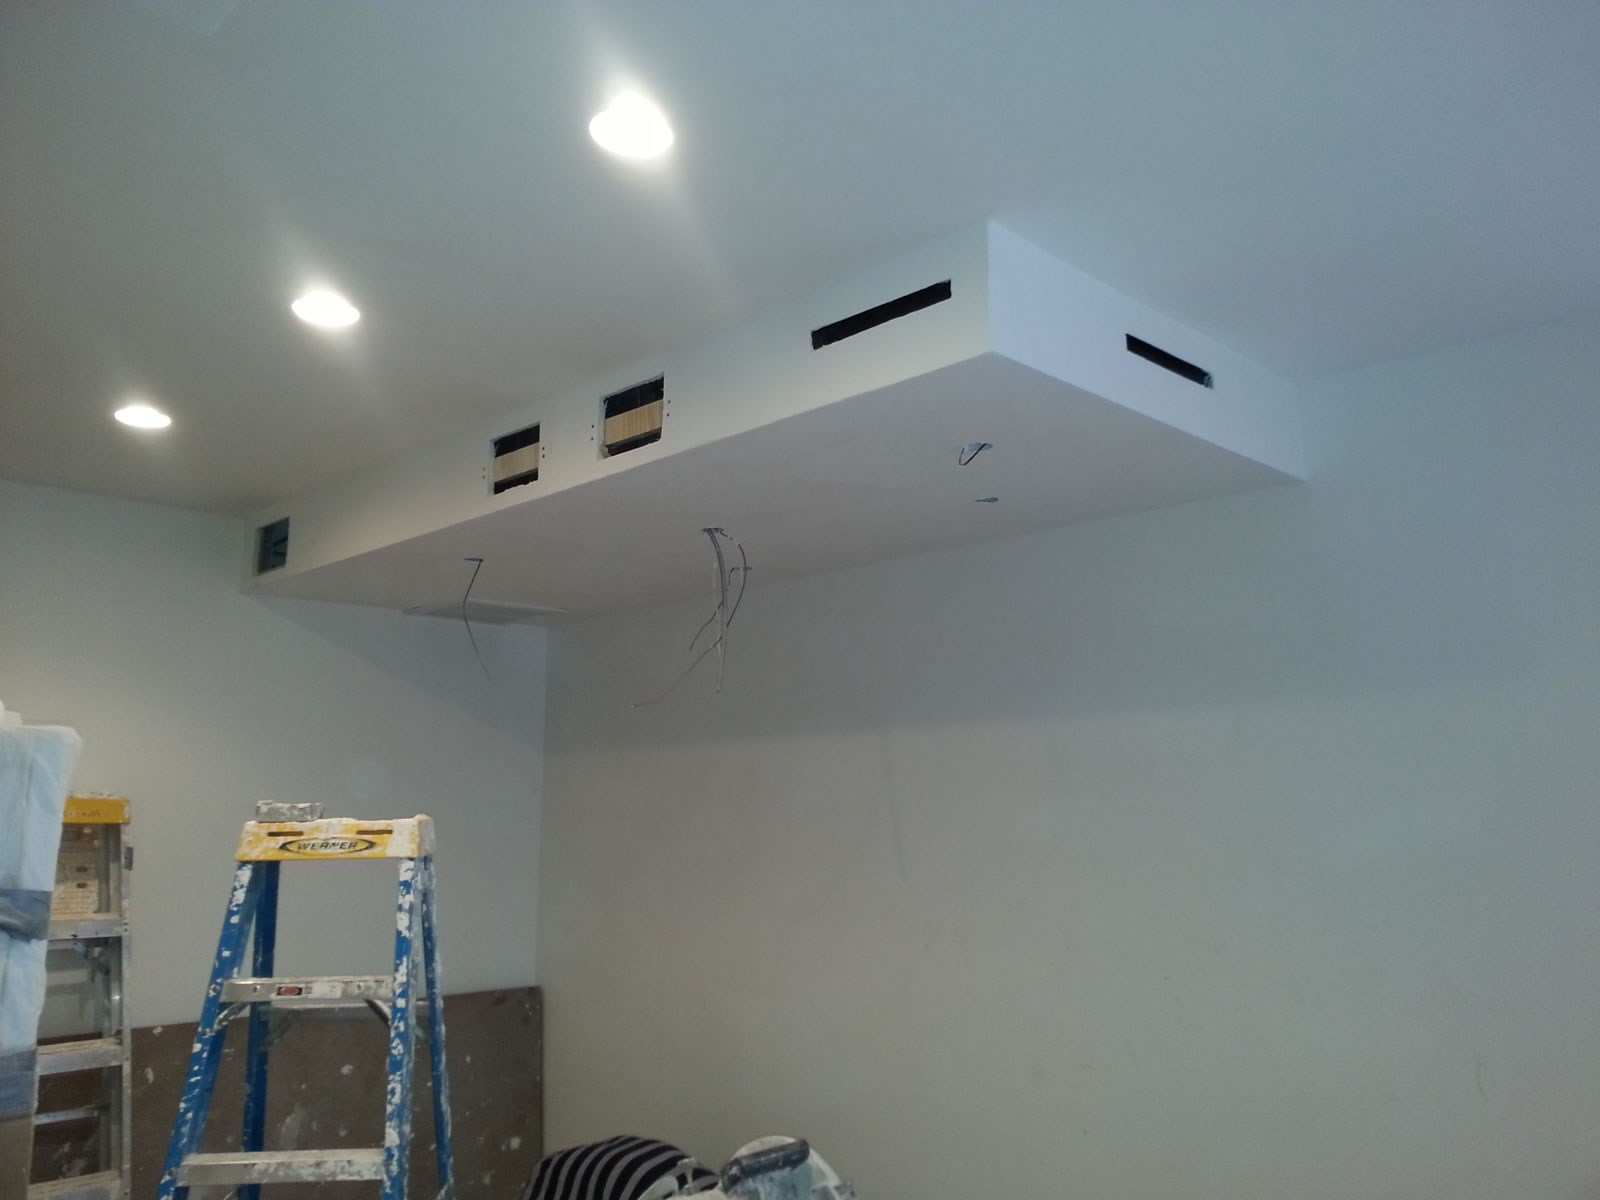 conditioner msz pump mounted mszgl split conditioners unit mitsubishi air indoor btu heat mini ductless wall